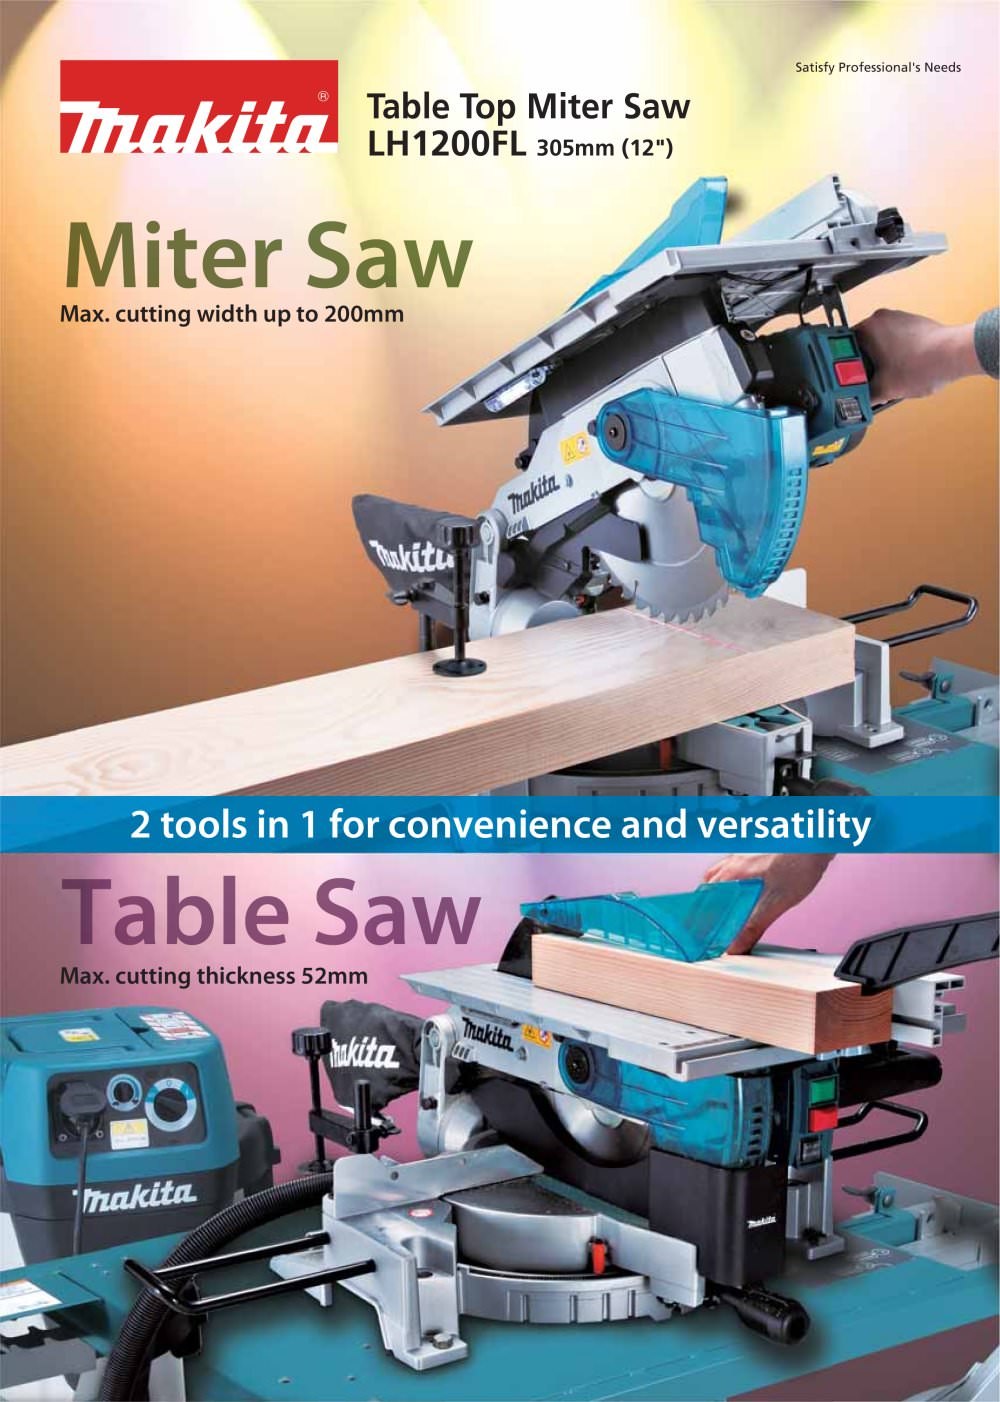 Table Saw Table Top